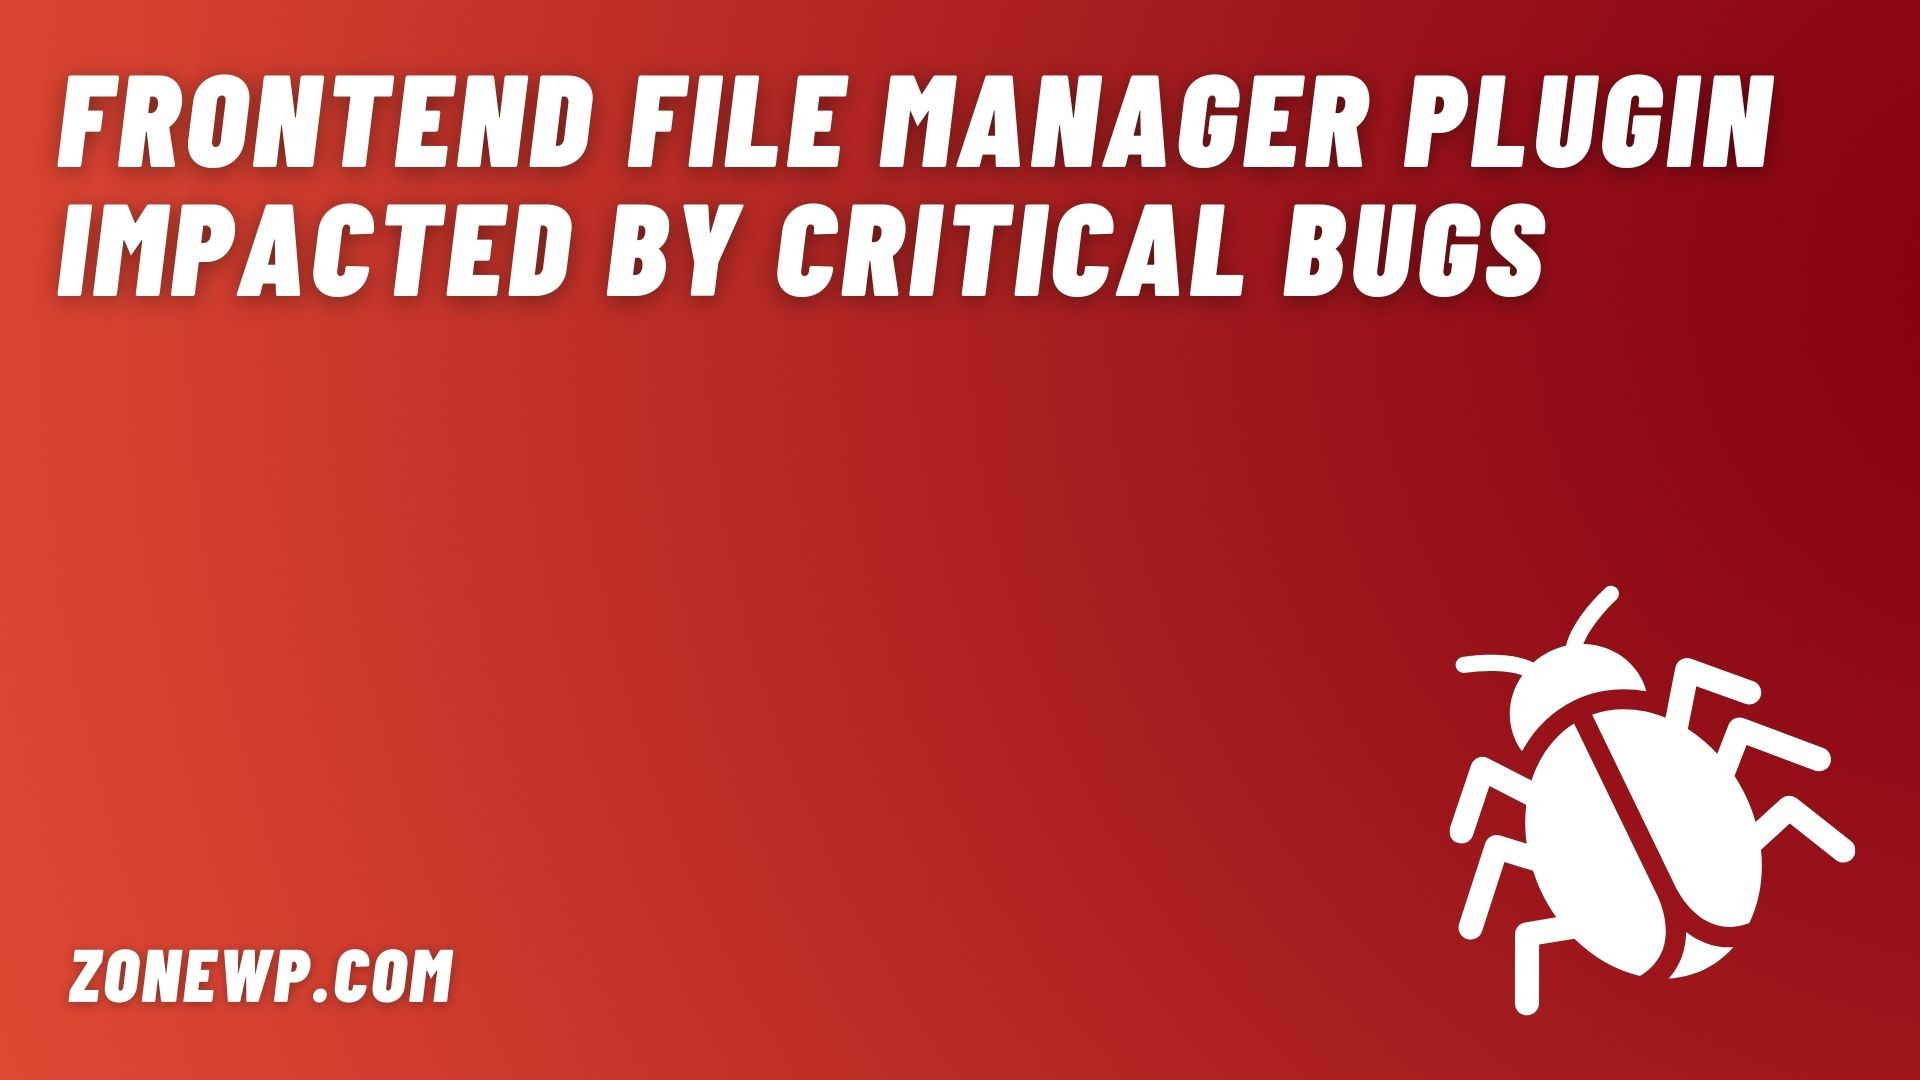 XSS Flaw, Frontend File Manager Plugin Impacted By Critical Bugs